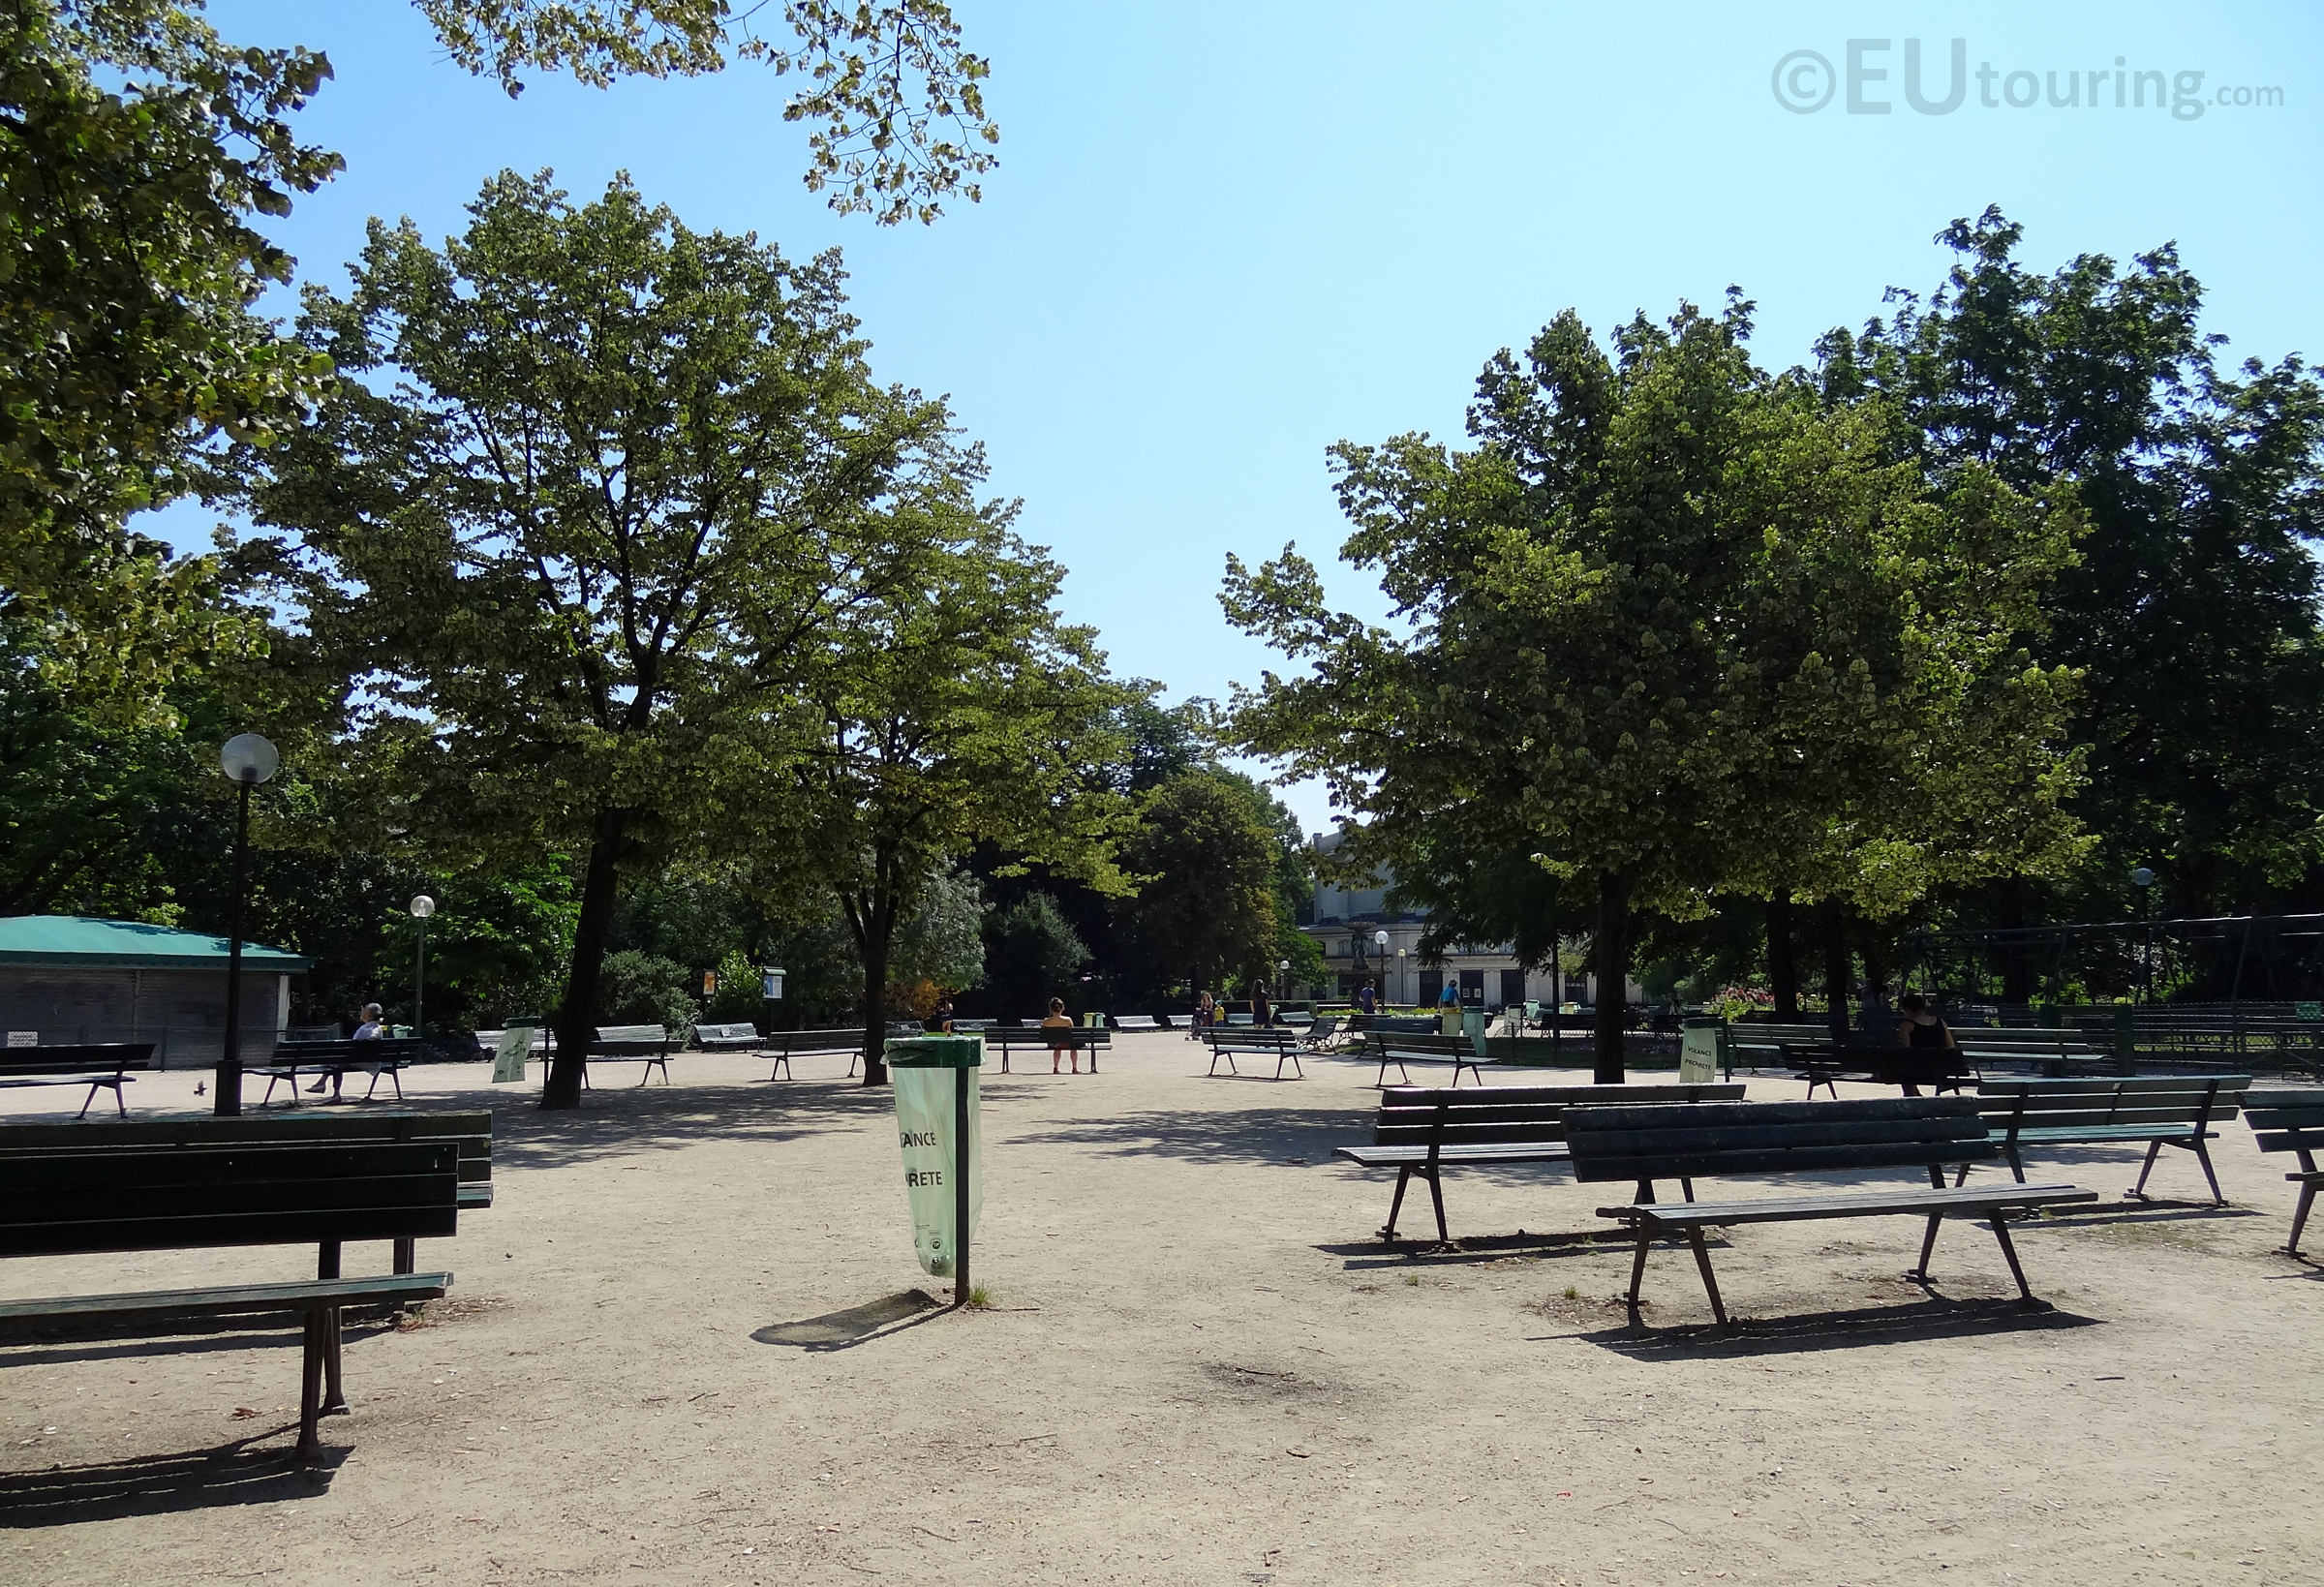 Seats within Jardins des Champs Elysees